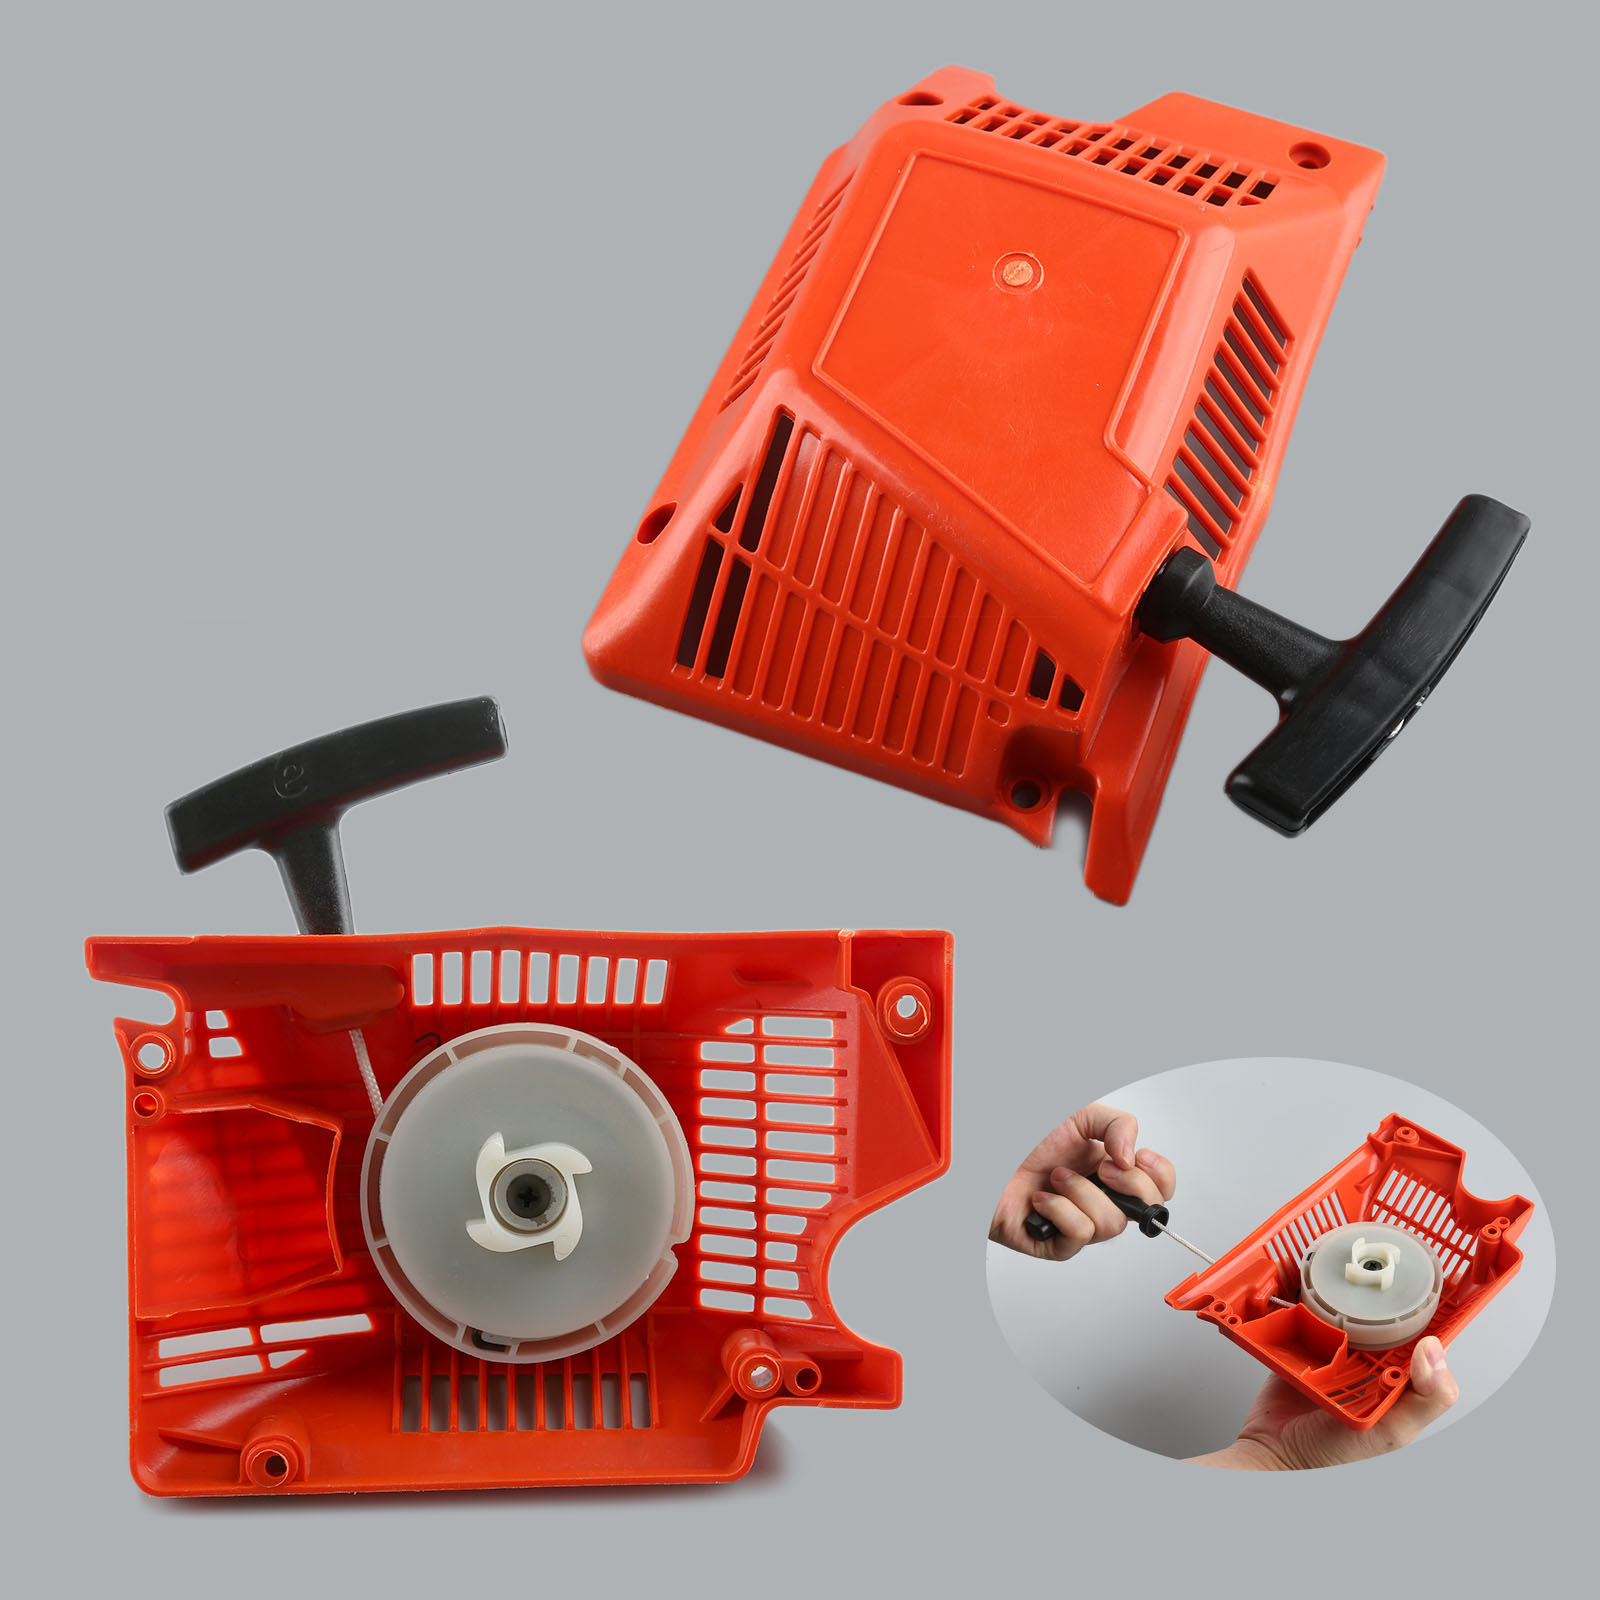 DRELD 45cc 52cc 58cc Chainsaw Parts Single Recoil Pull Starter Assembly Chainsaw Spares For Chinese Chainsaw 4500/5200/5800